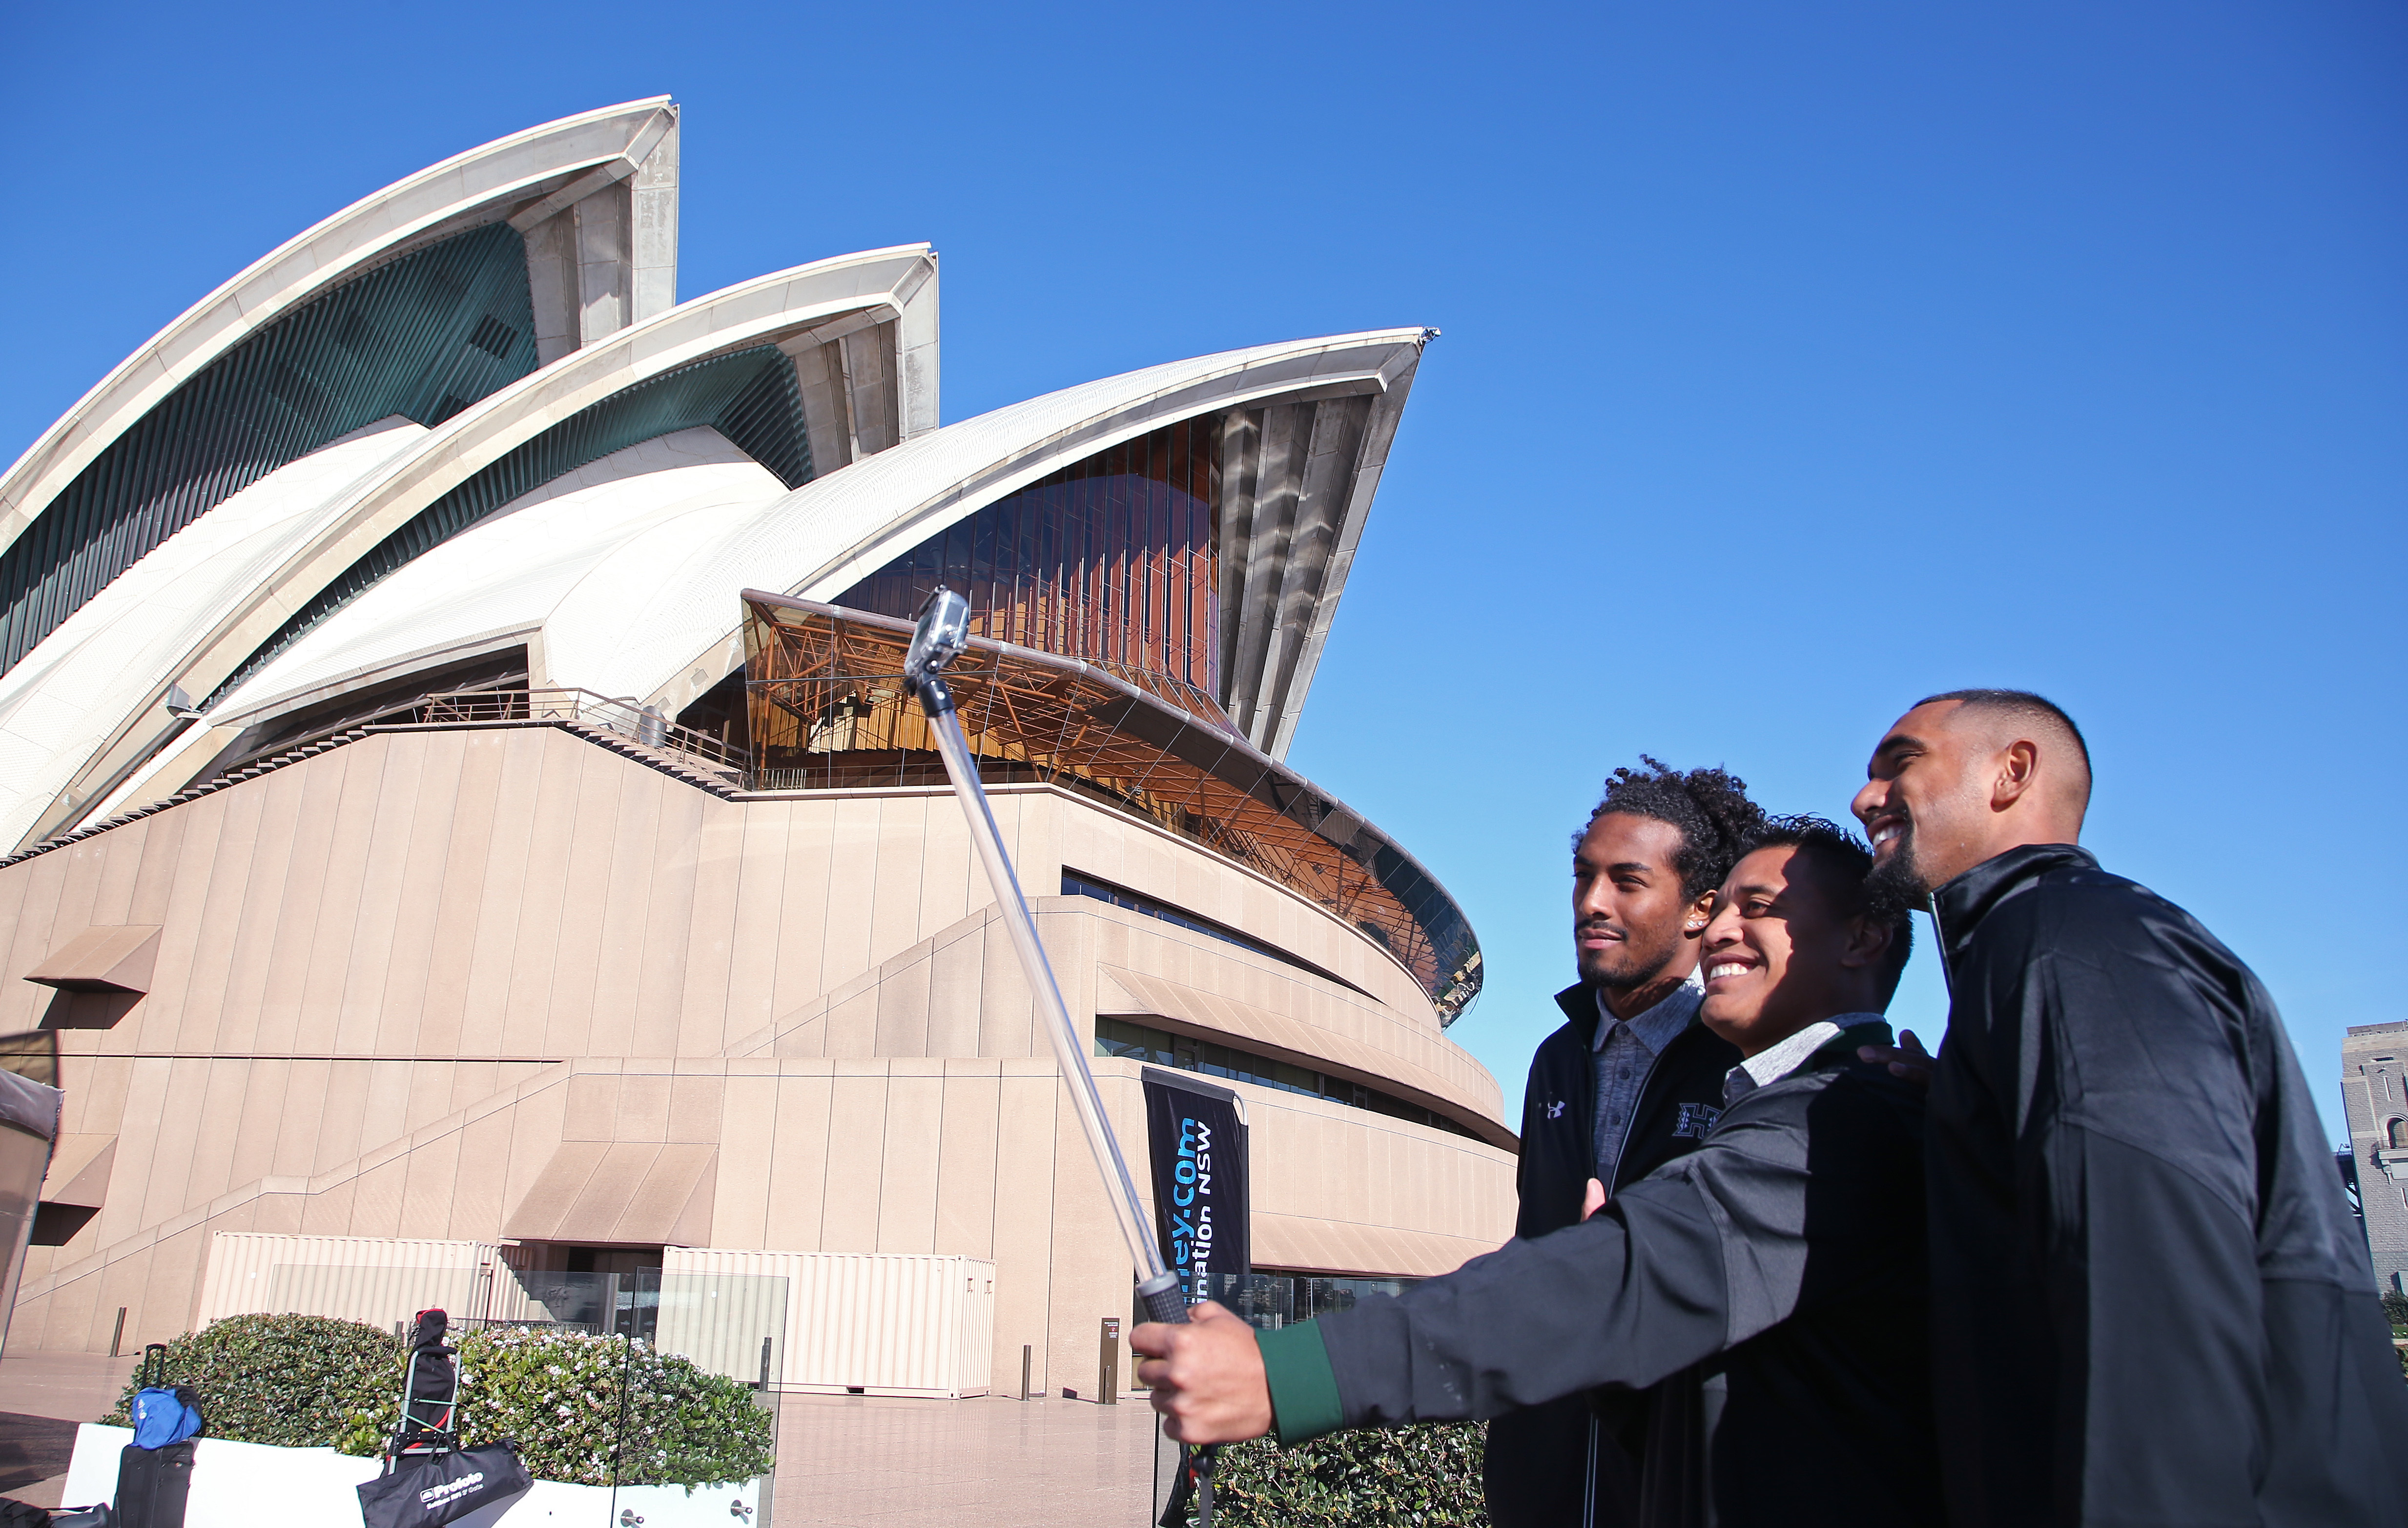 Hawaii Rainbow Warriors' players Marcus Kemp, left, Steven Lakalaka and Makan Kema-Kaleiwahia, right, take advantage of the sites around Sydney to take photos at the Opera House, Tuesday, Aug. 23, 2016, ahead of their opening college football game of the